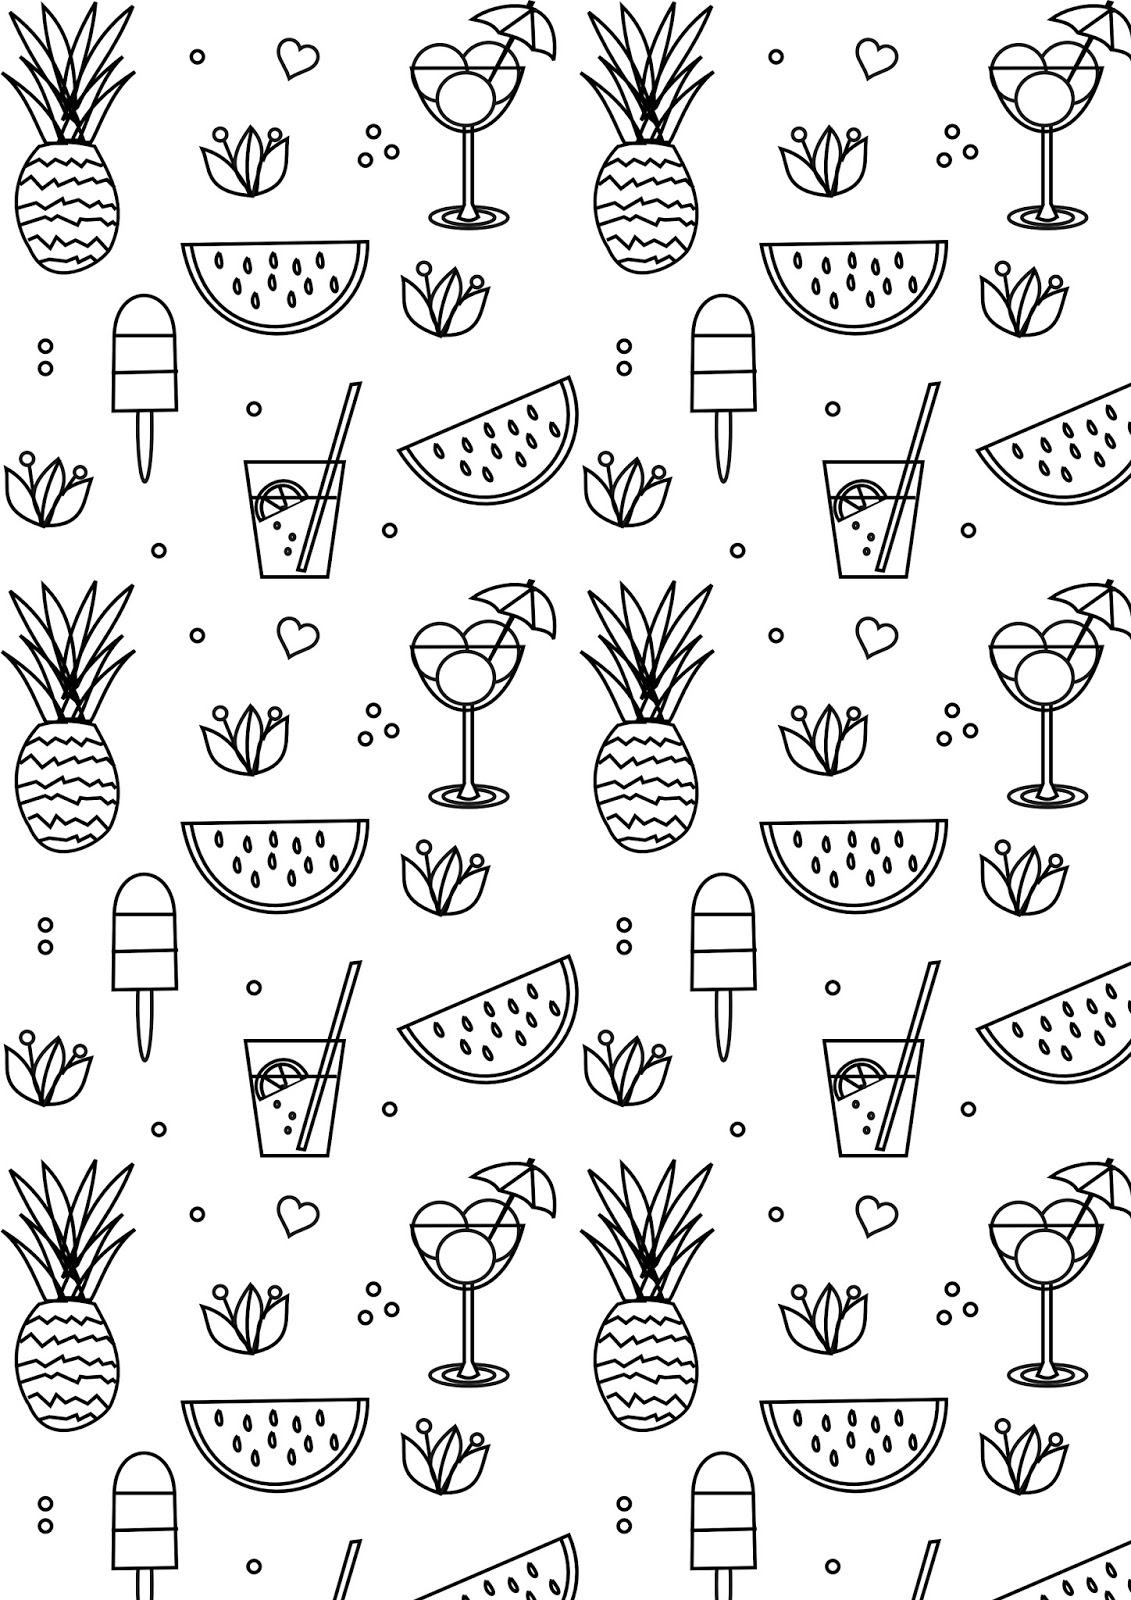 coloring pages for summer summer fun printable coloring pages coloring home summer for coloring pages